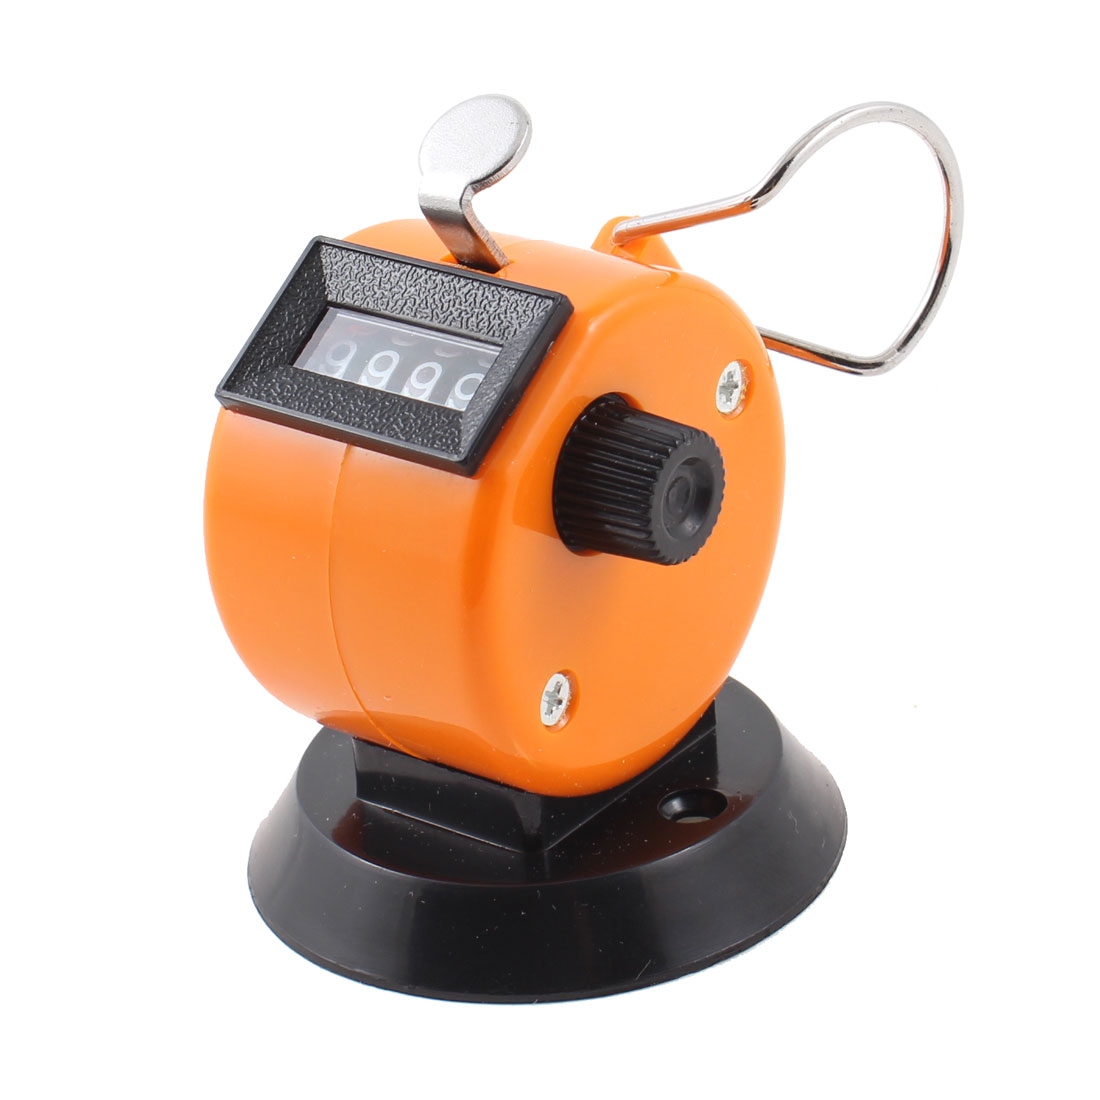 Black Orange Plastic 4 Digits Table Desk Tally Counter